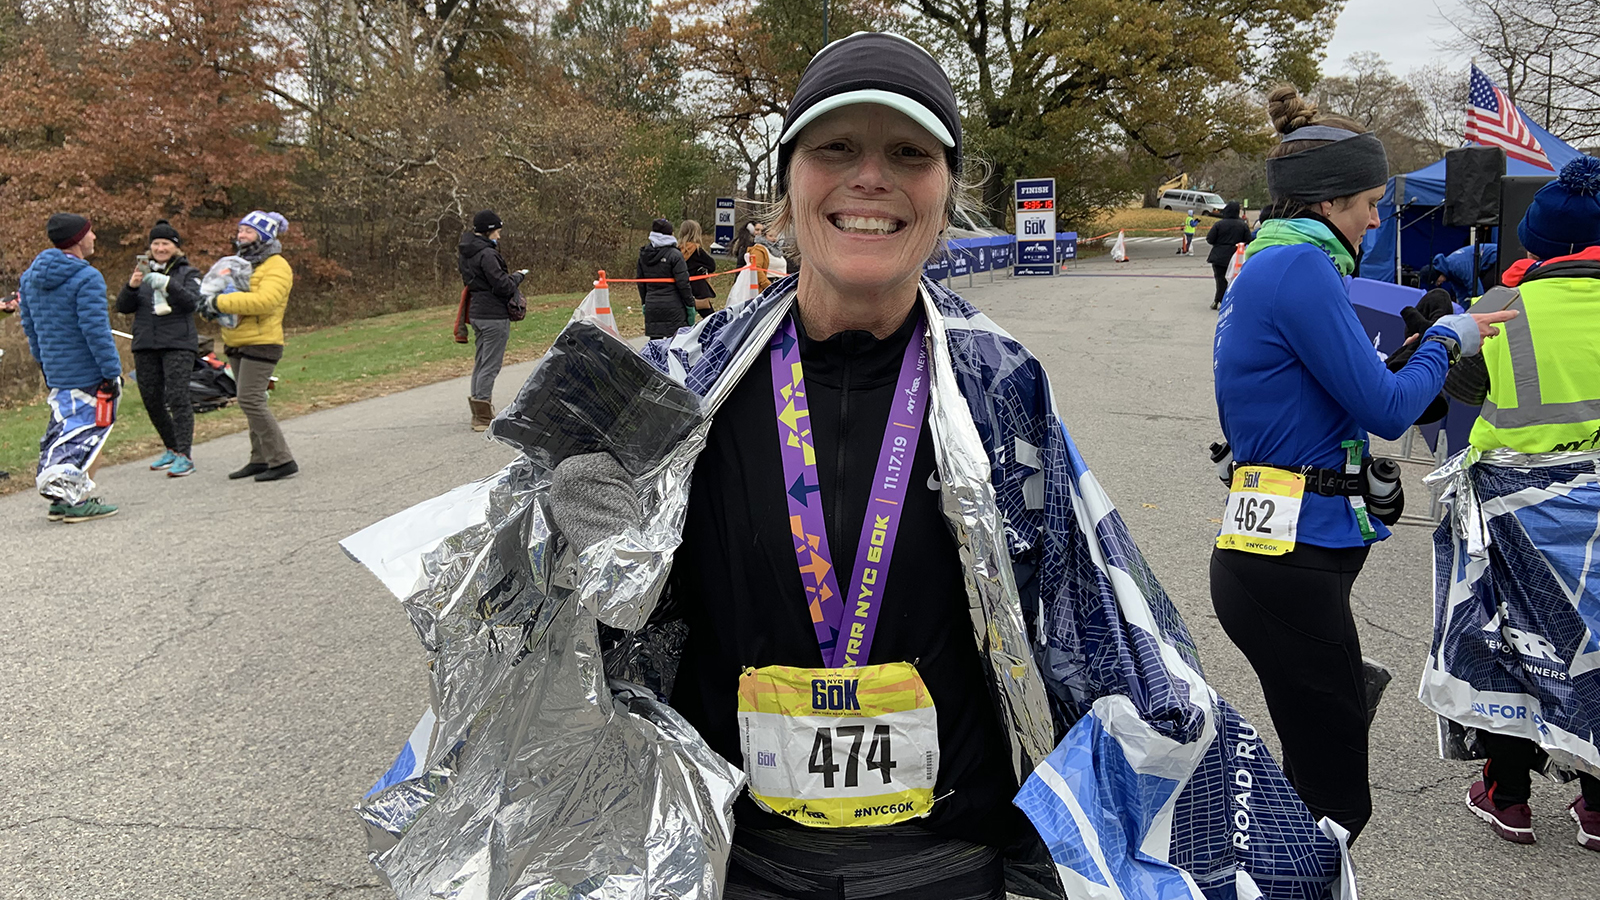 A woman after the NYRR 60K posing with her medal and souvenir backpack.